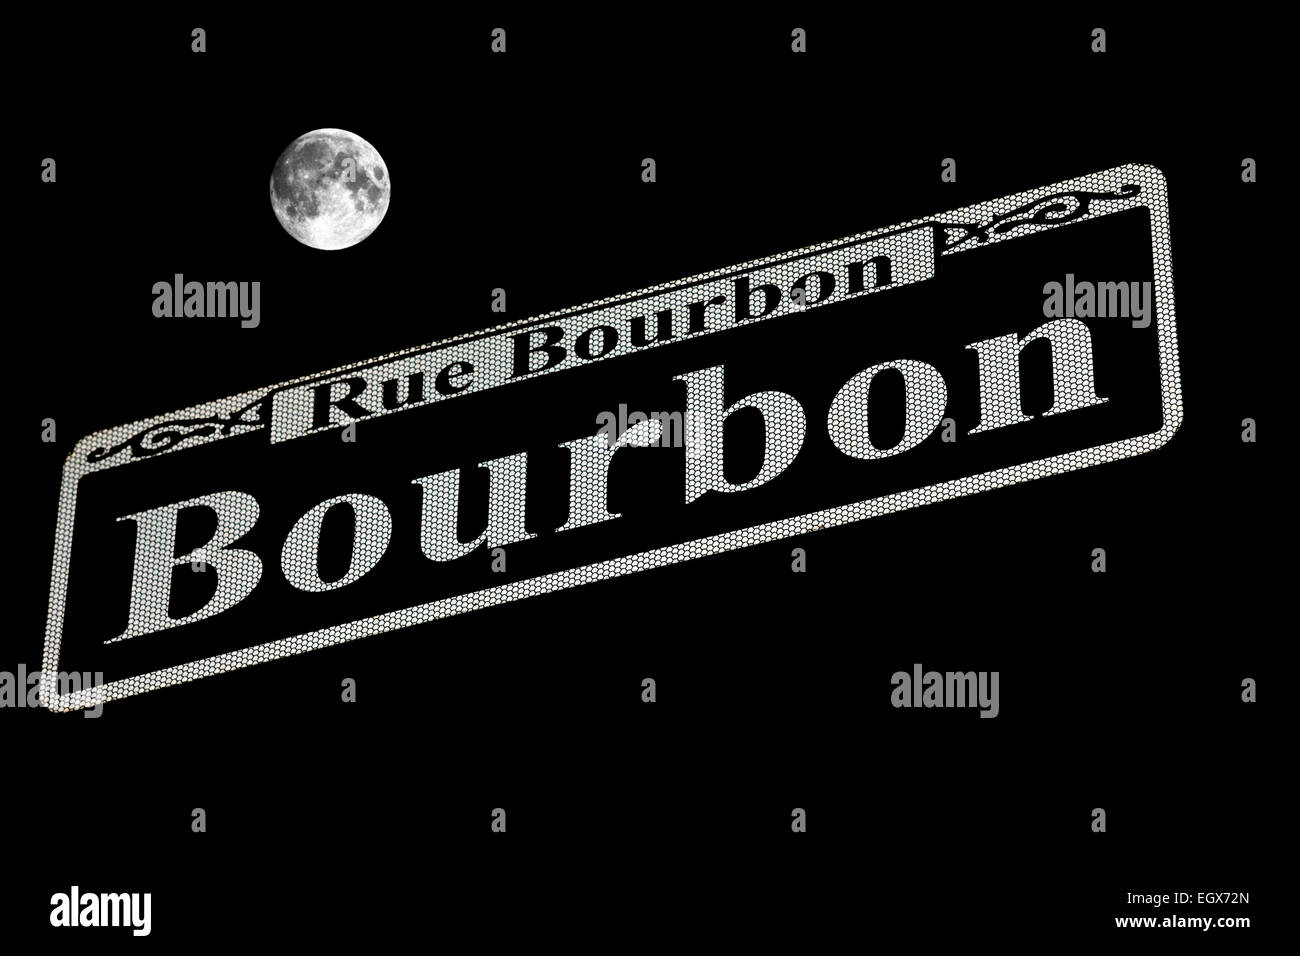 BOURBON STREET SIGN FRENCH QUARTER  DOWNTOWN NEW ORLEANS LOUISIANA USA - Stock Image